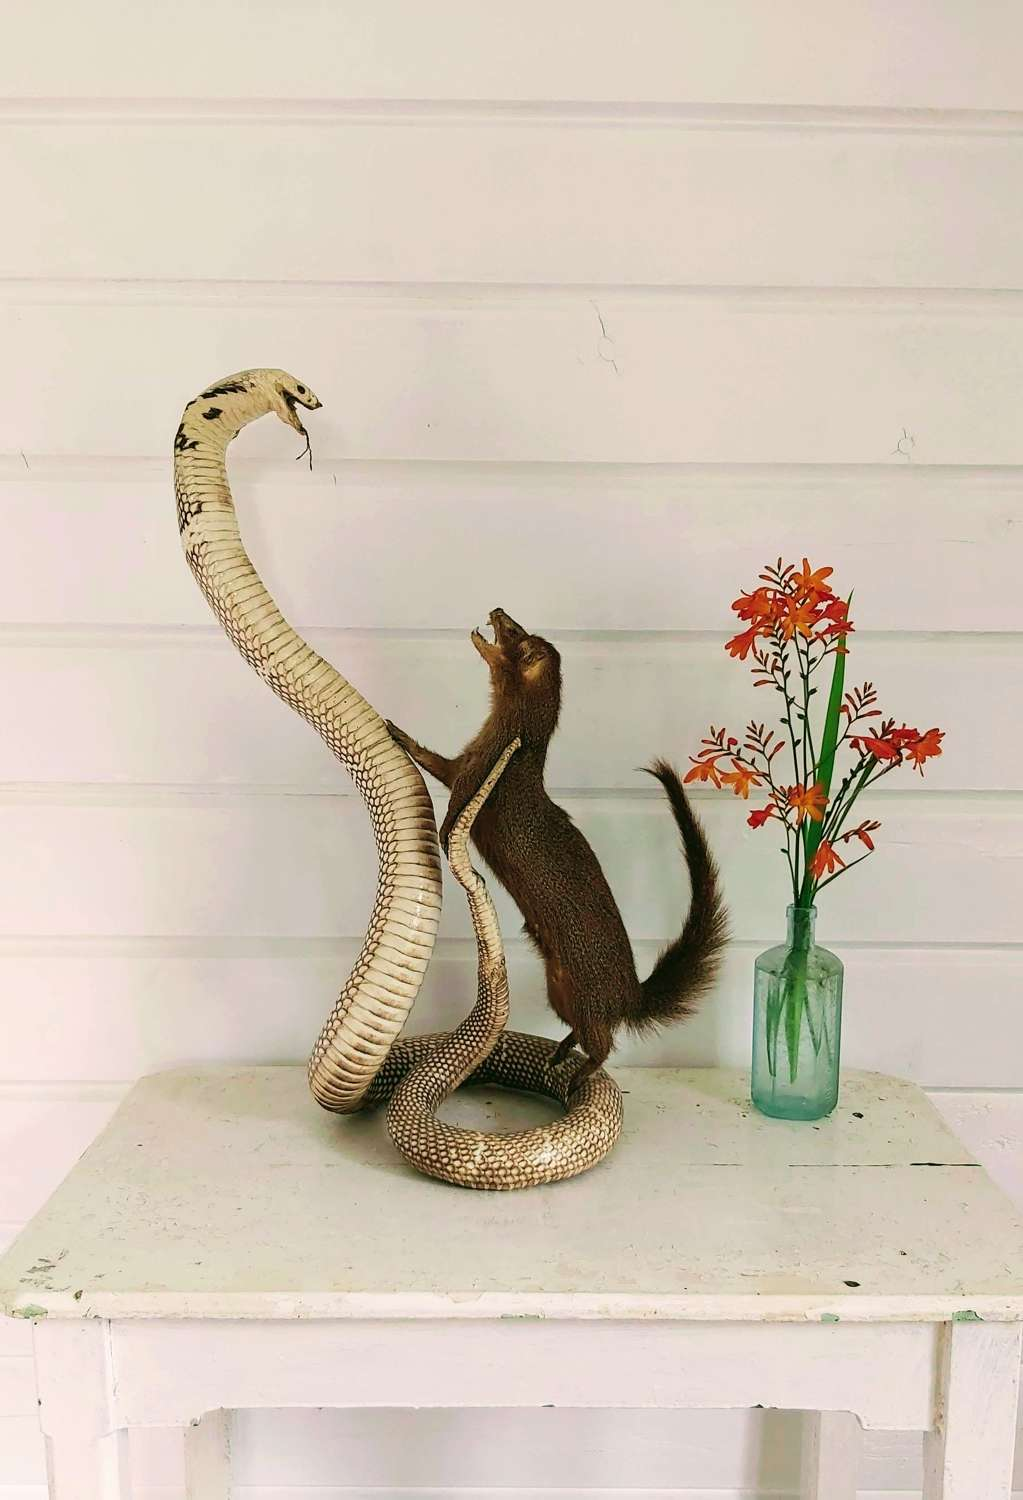 Early 20th century Snake and Mongoose taxidermy display